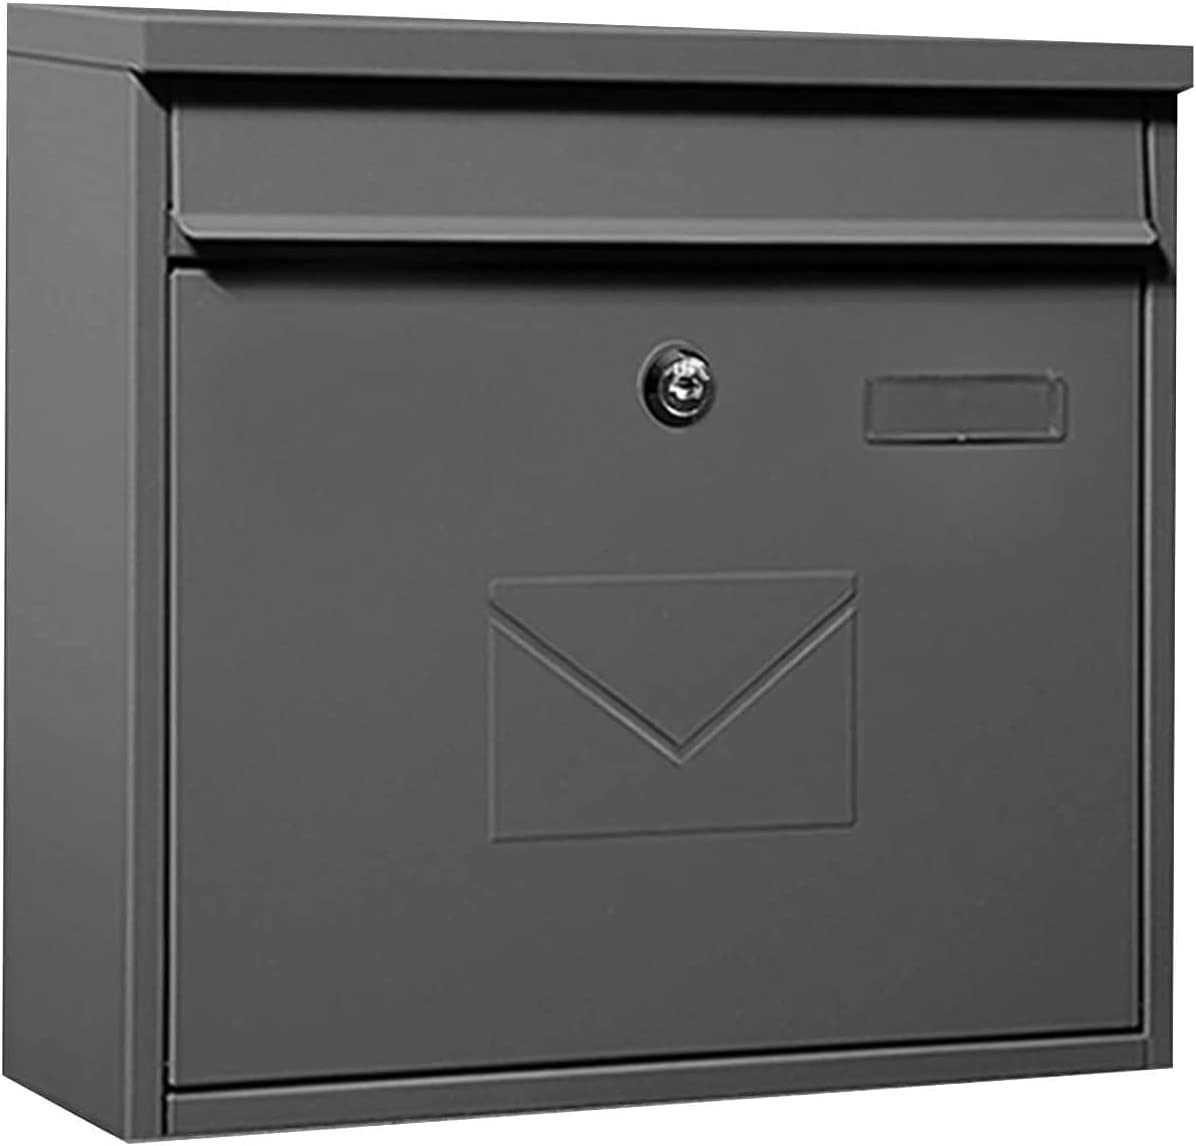 AACXRCR Outlet SALE Letter Box Max 82% OFF Modern Locking Wall Mailbox Mount Metal Grey